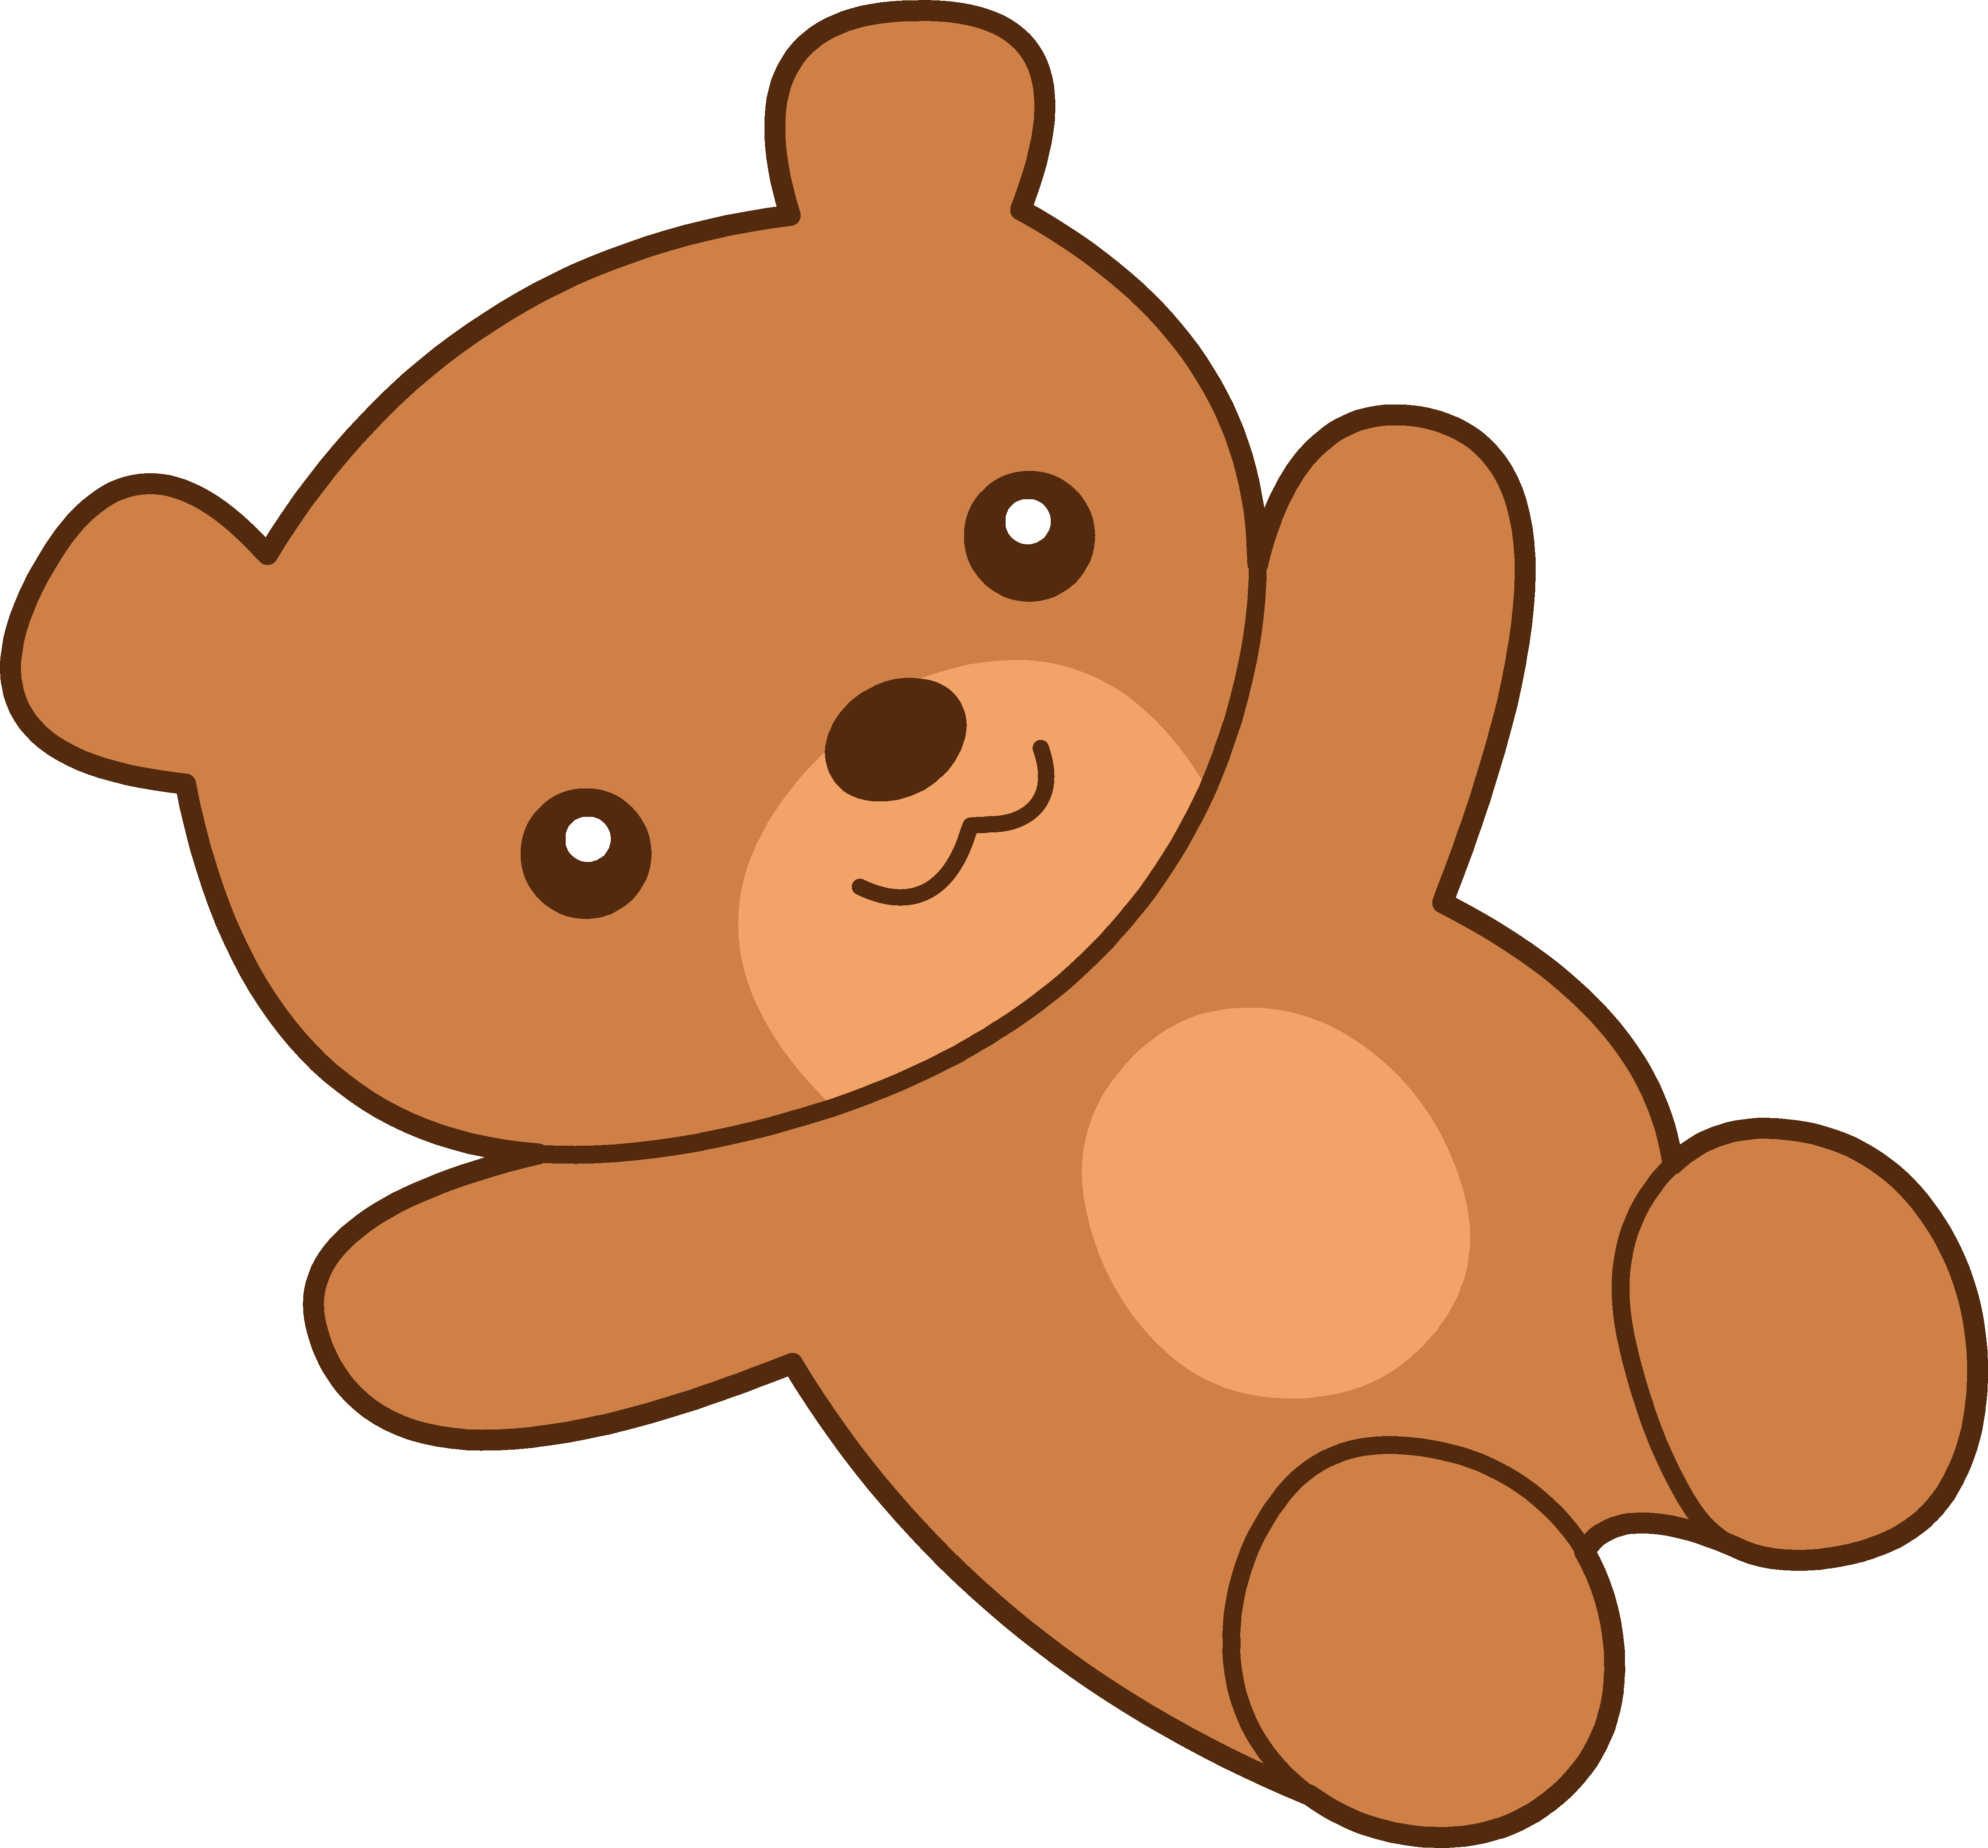 Cute school bear clipart clipart transparent stock Chicago Bears Clipart at GetDrawings.com | Free for personal use ... clipart transparent stock